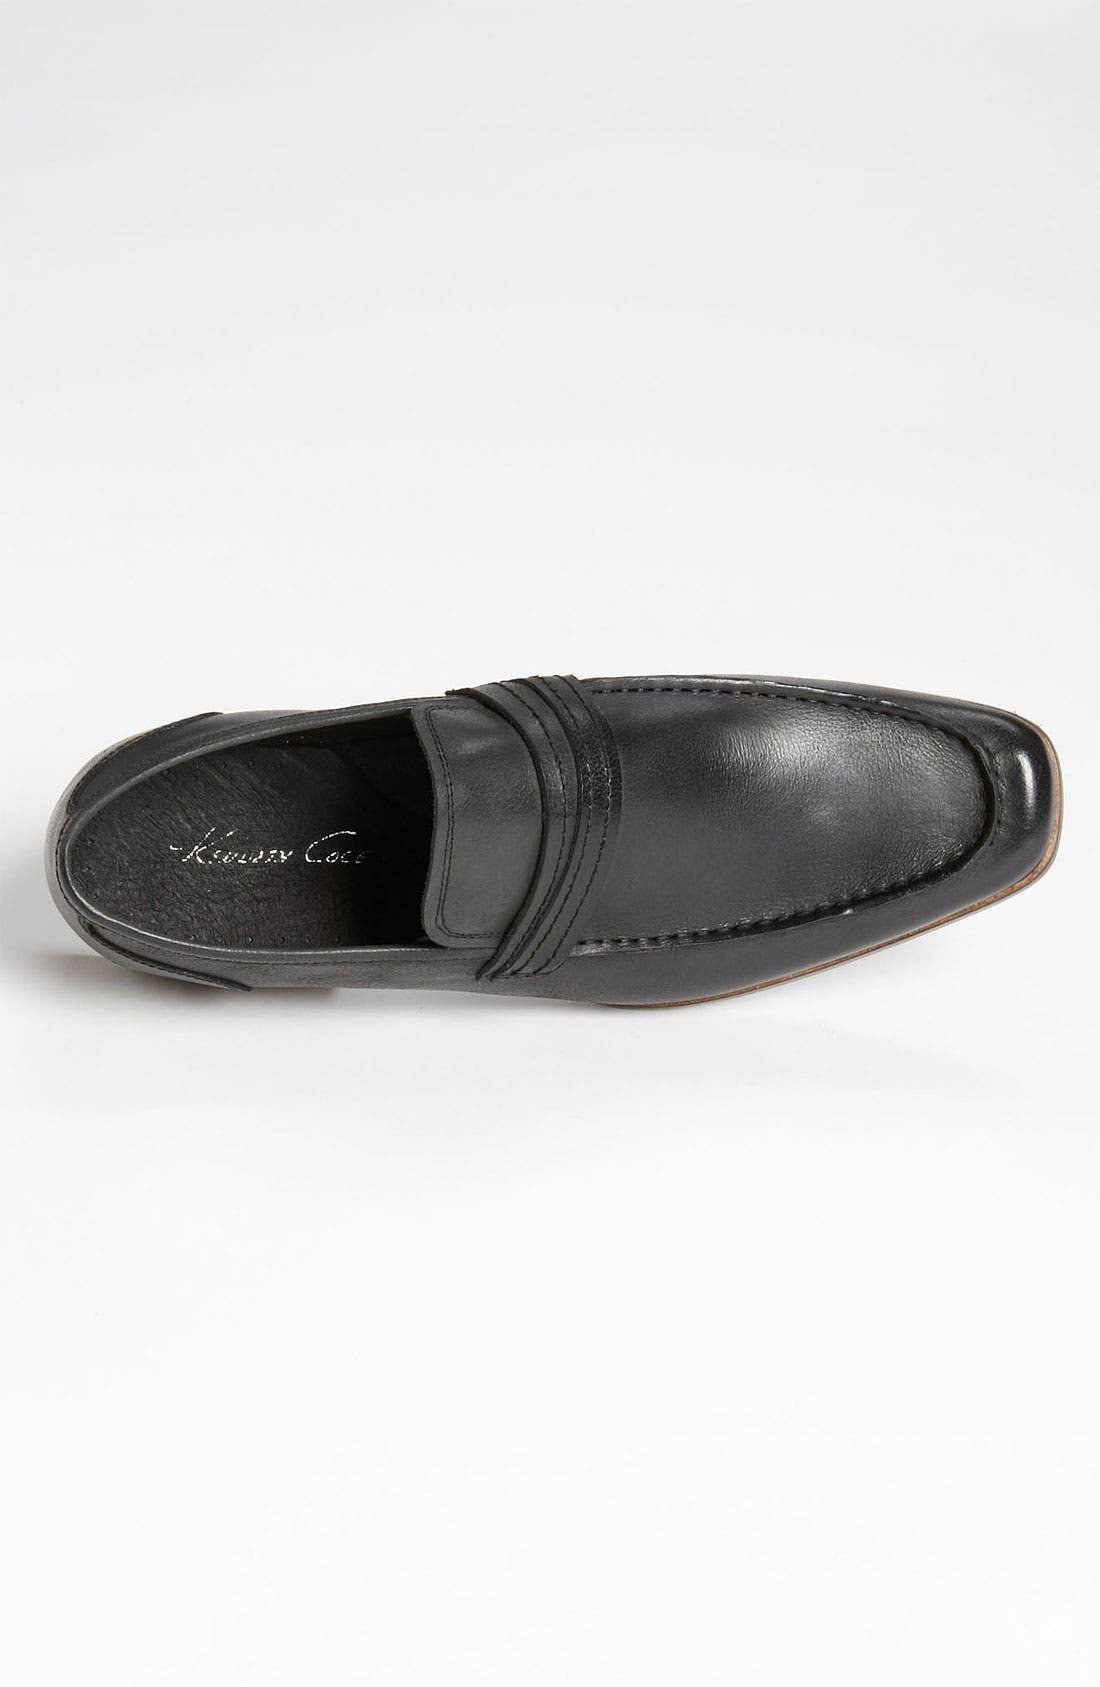 Alternate Image 3  - Kenneth Cole New York 'Vic-tory Dance' Loafer